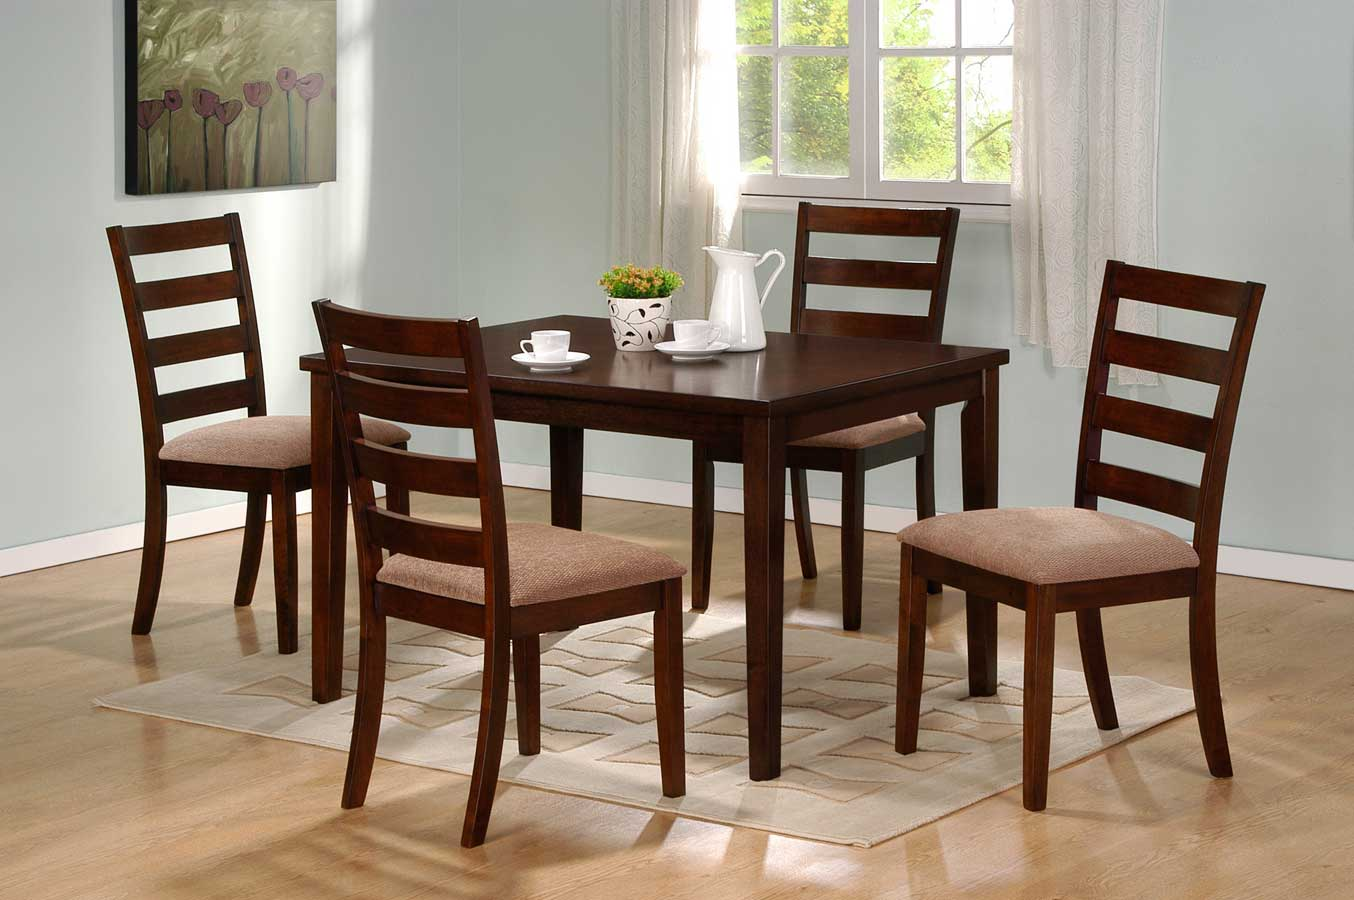 Homelegance Hale Dining Set A - Walnut